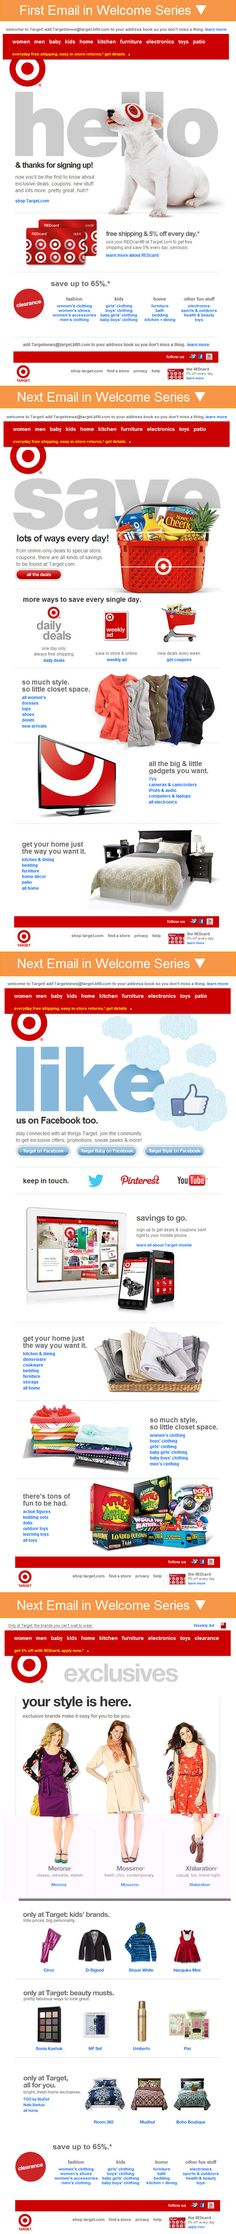 Target >> sent Q1 2013 >> Target's 4-email welcome series promotes their credit card, different ways they help you save money, their social presence and their exclusive brands. Brands are definitely moving beyond the simple single welcome email. –Chad White, Principal of Marketing Research